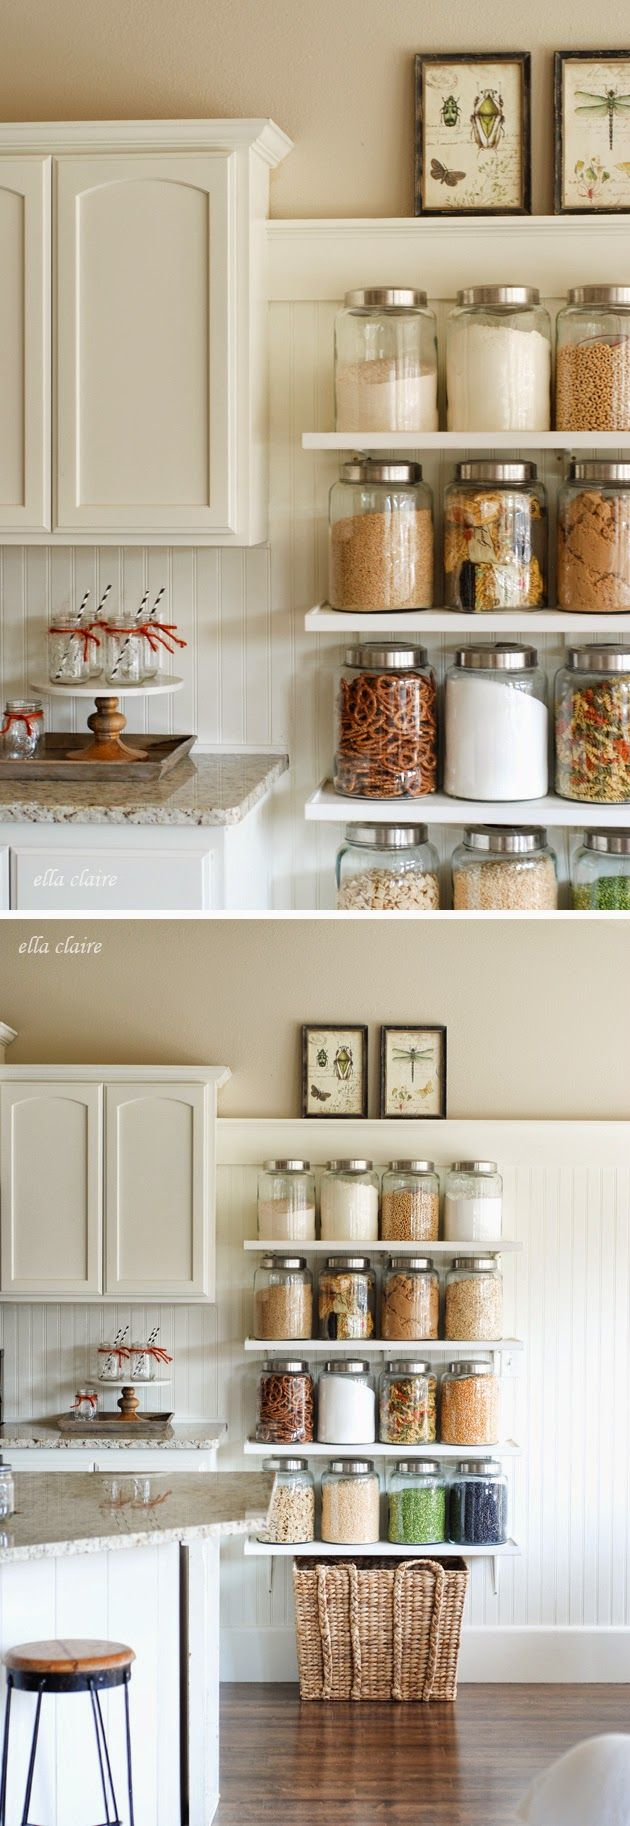 how to add a pantry your kitchen faucet brands 32 crazily simple diy tips improve designbump shelves